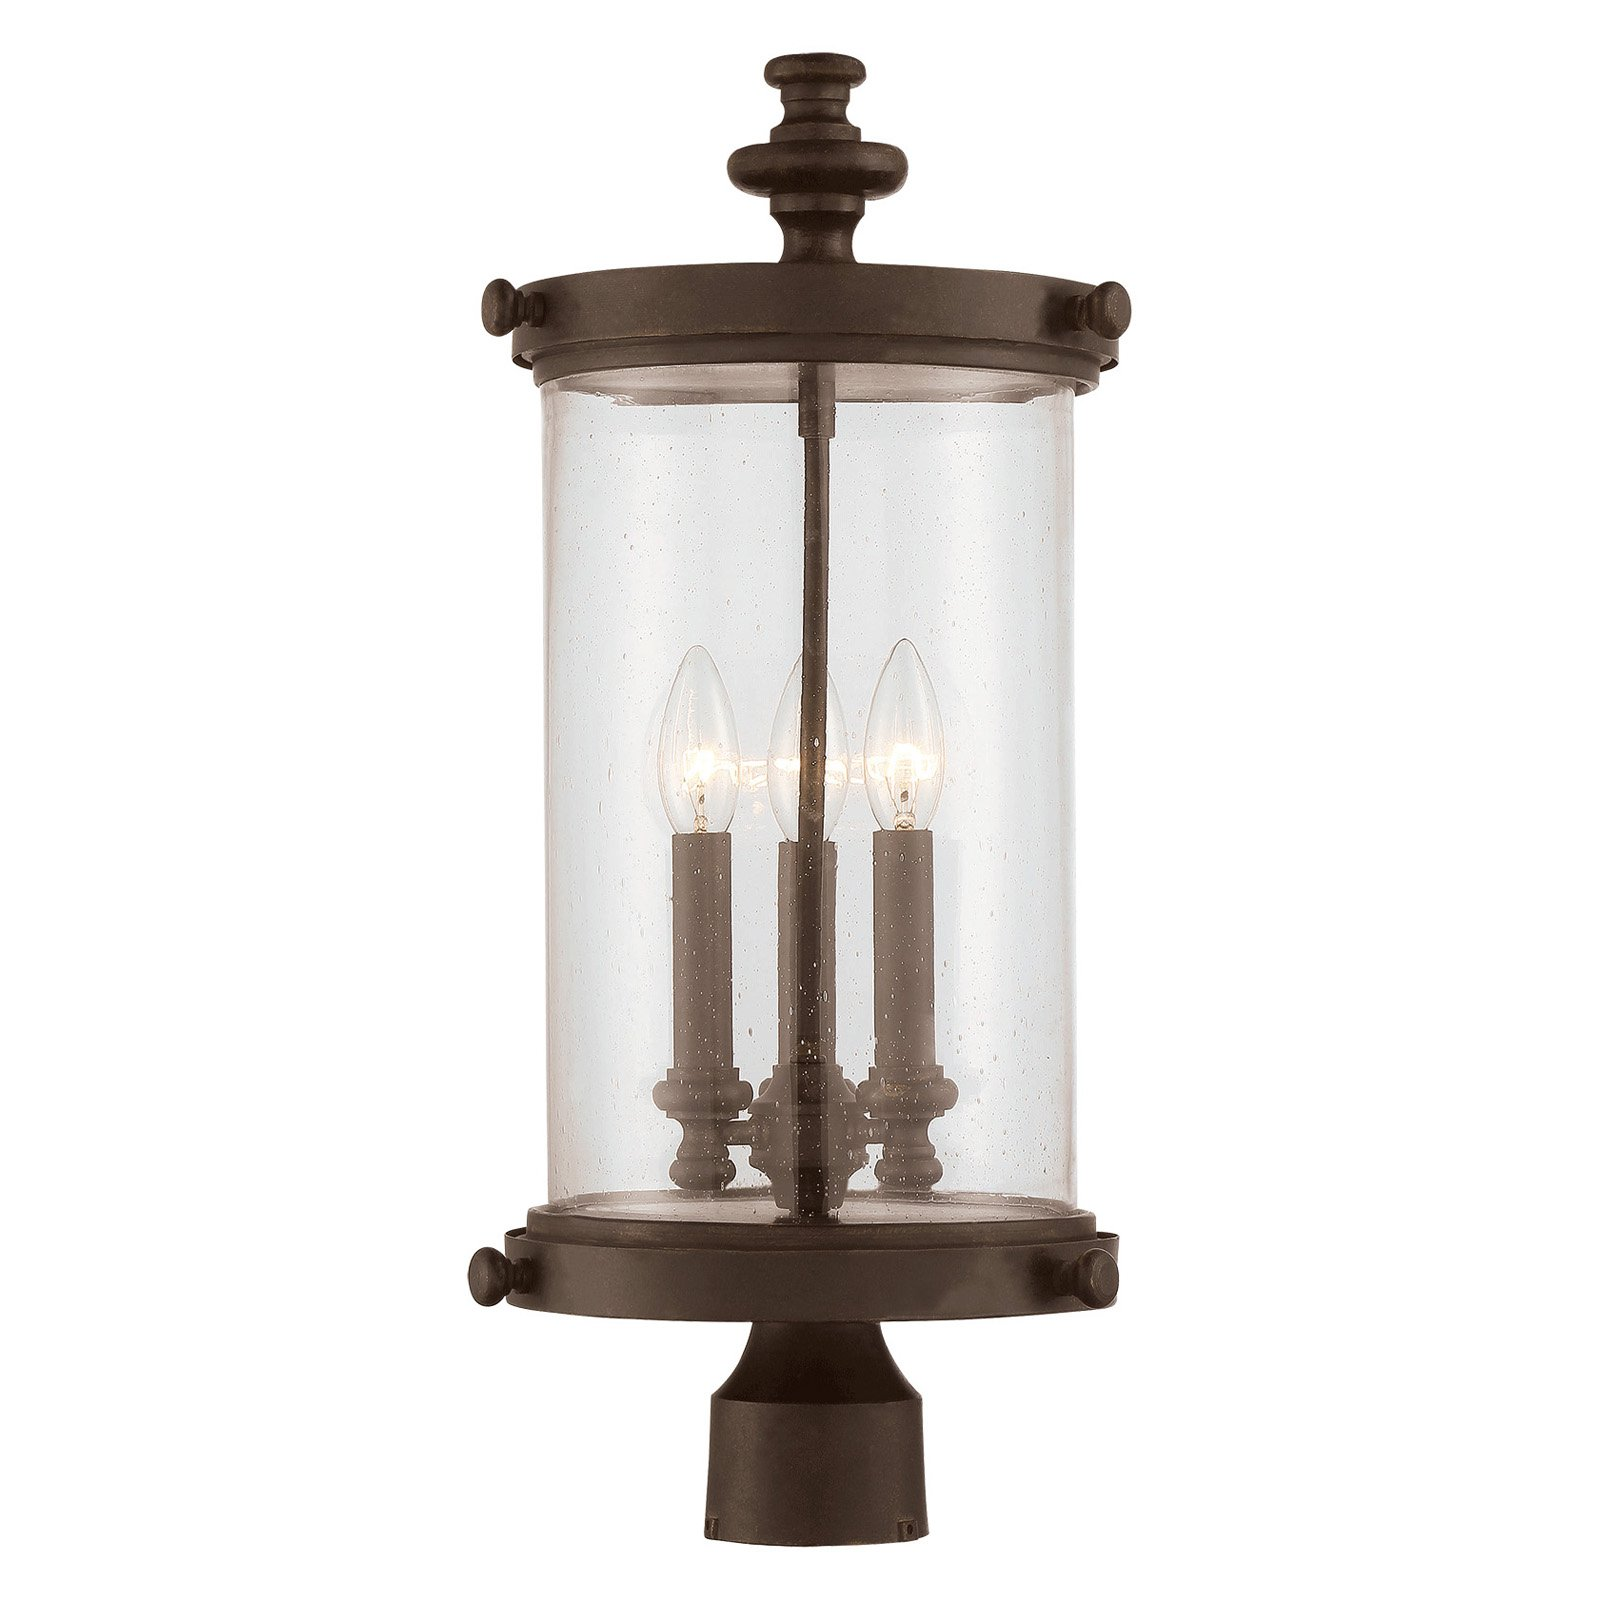 Savoy House Palmer 5-1223-40 Outdoor Post Lantern by Savoy House